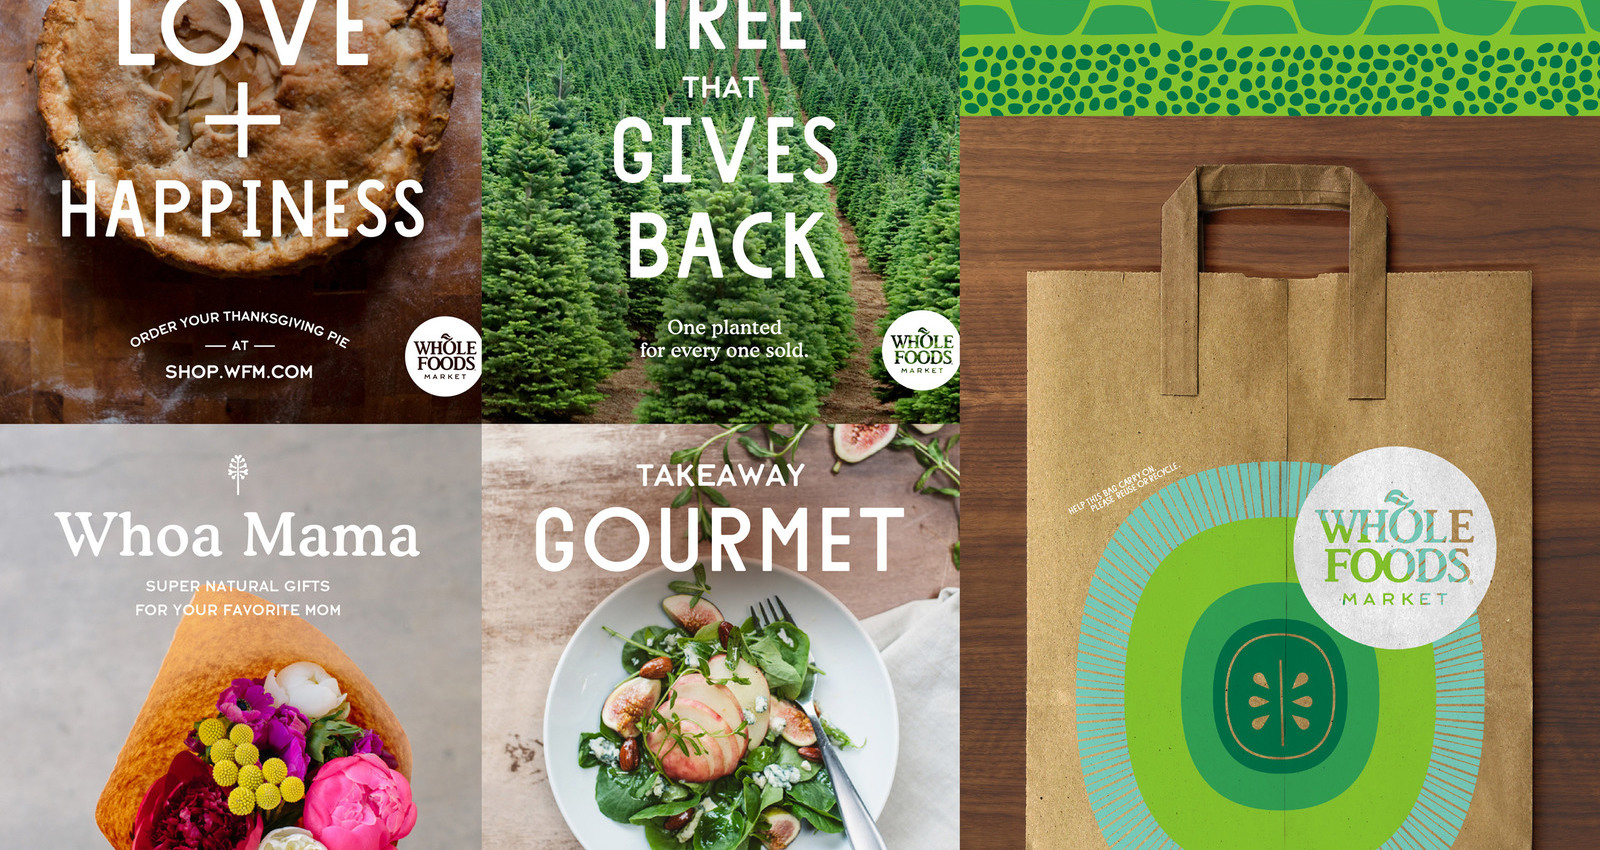 Whole Foods Market Rebrand